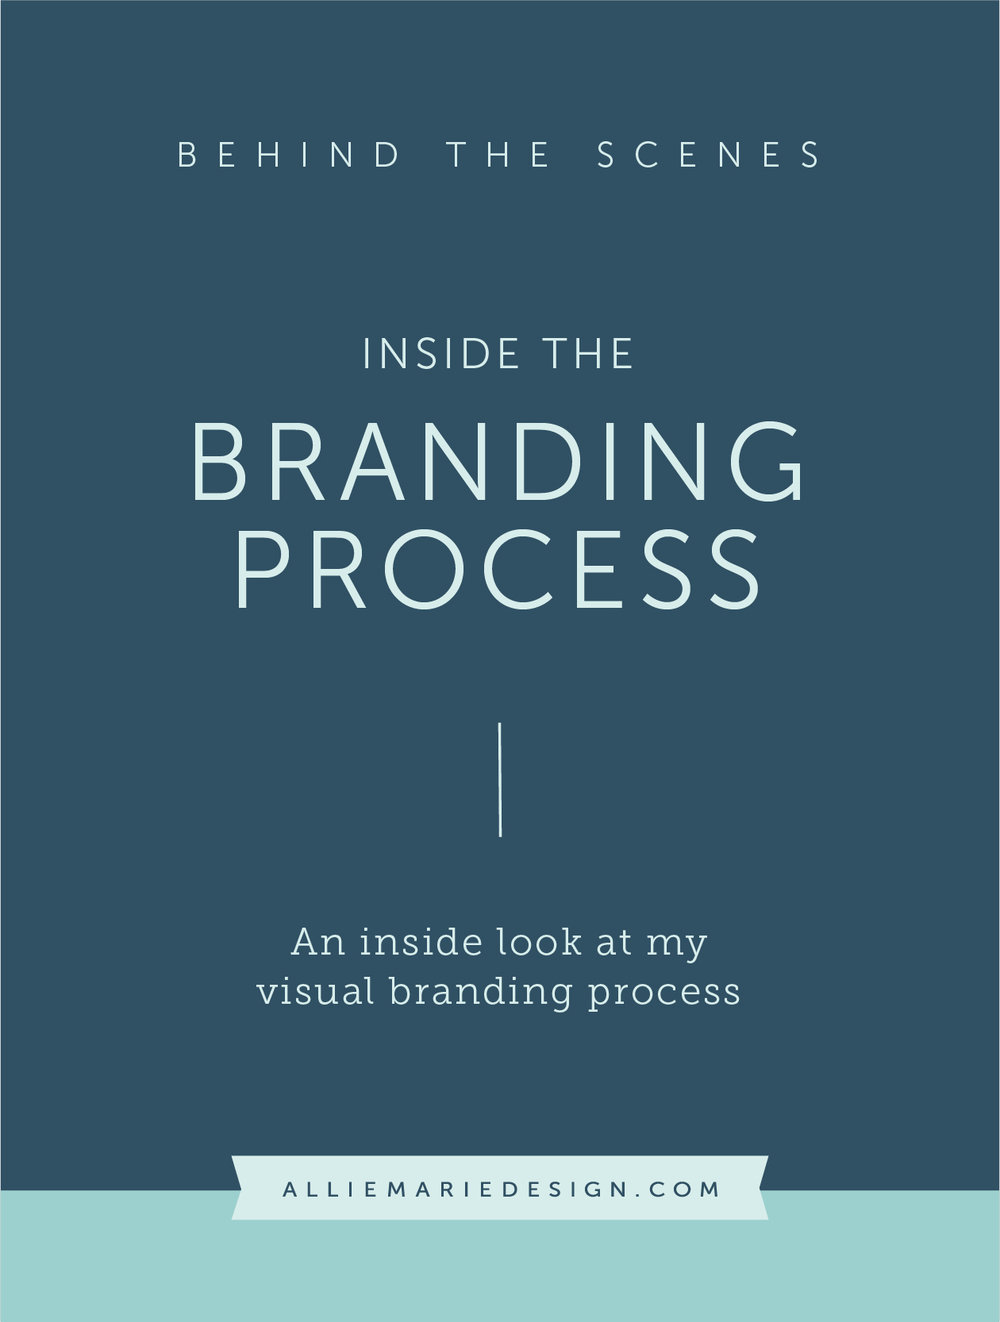 An Inside Look at my Branding Process  |  AllieMarie Design